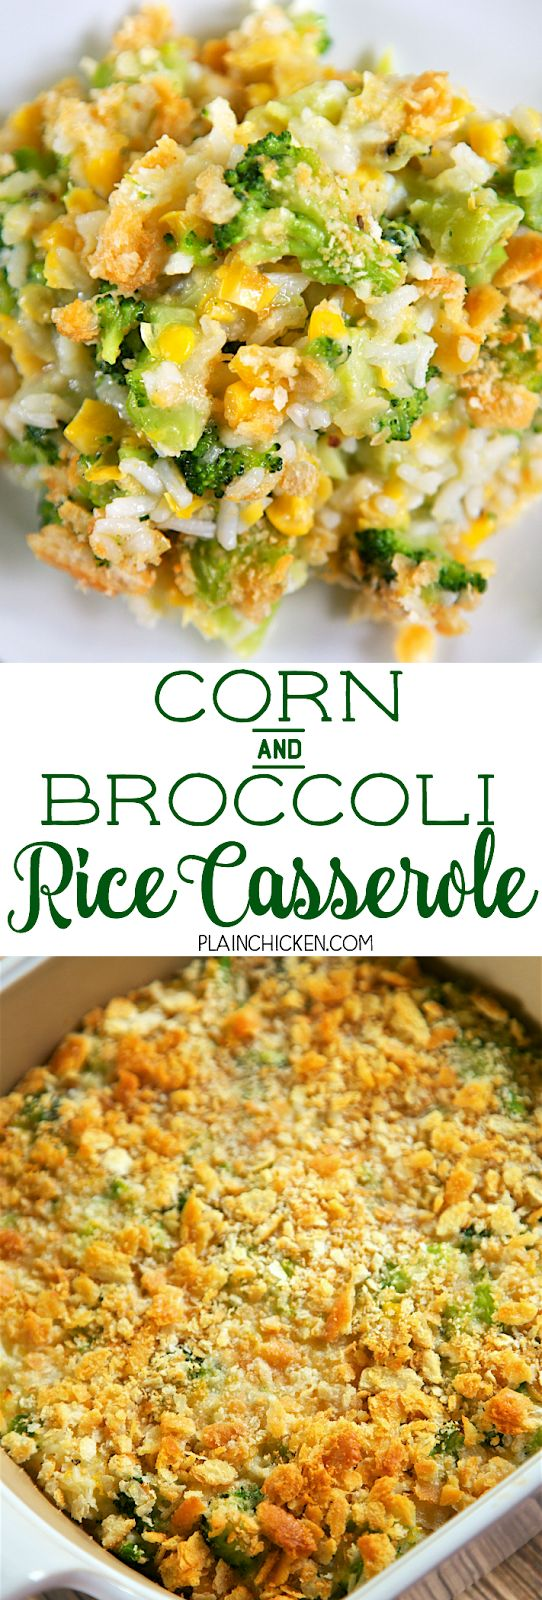 Corn and Broccoli Rice Casserole - so simple and SO delicious! Everyone cleaned…